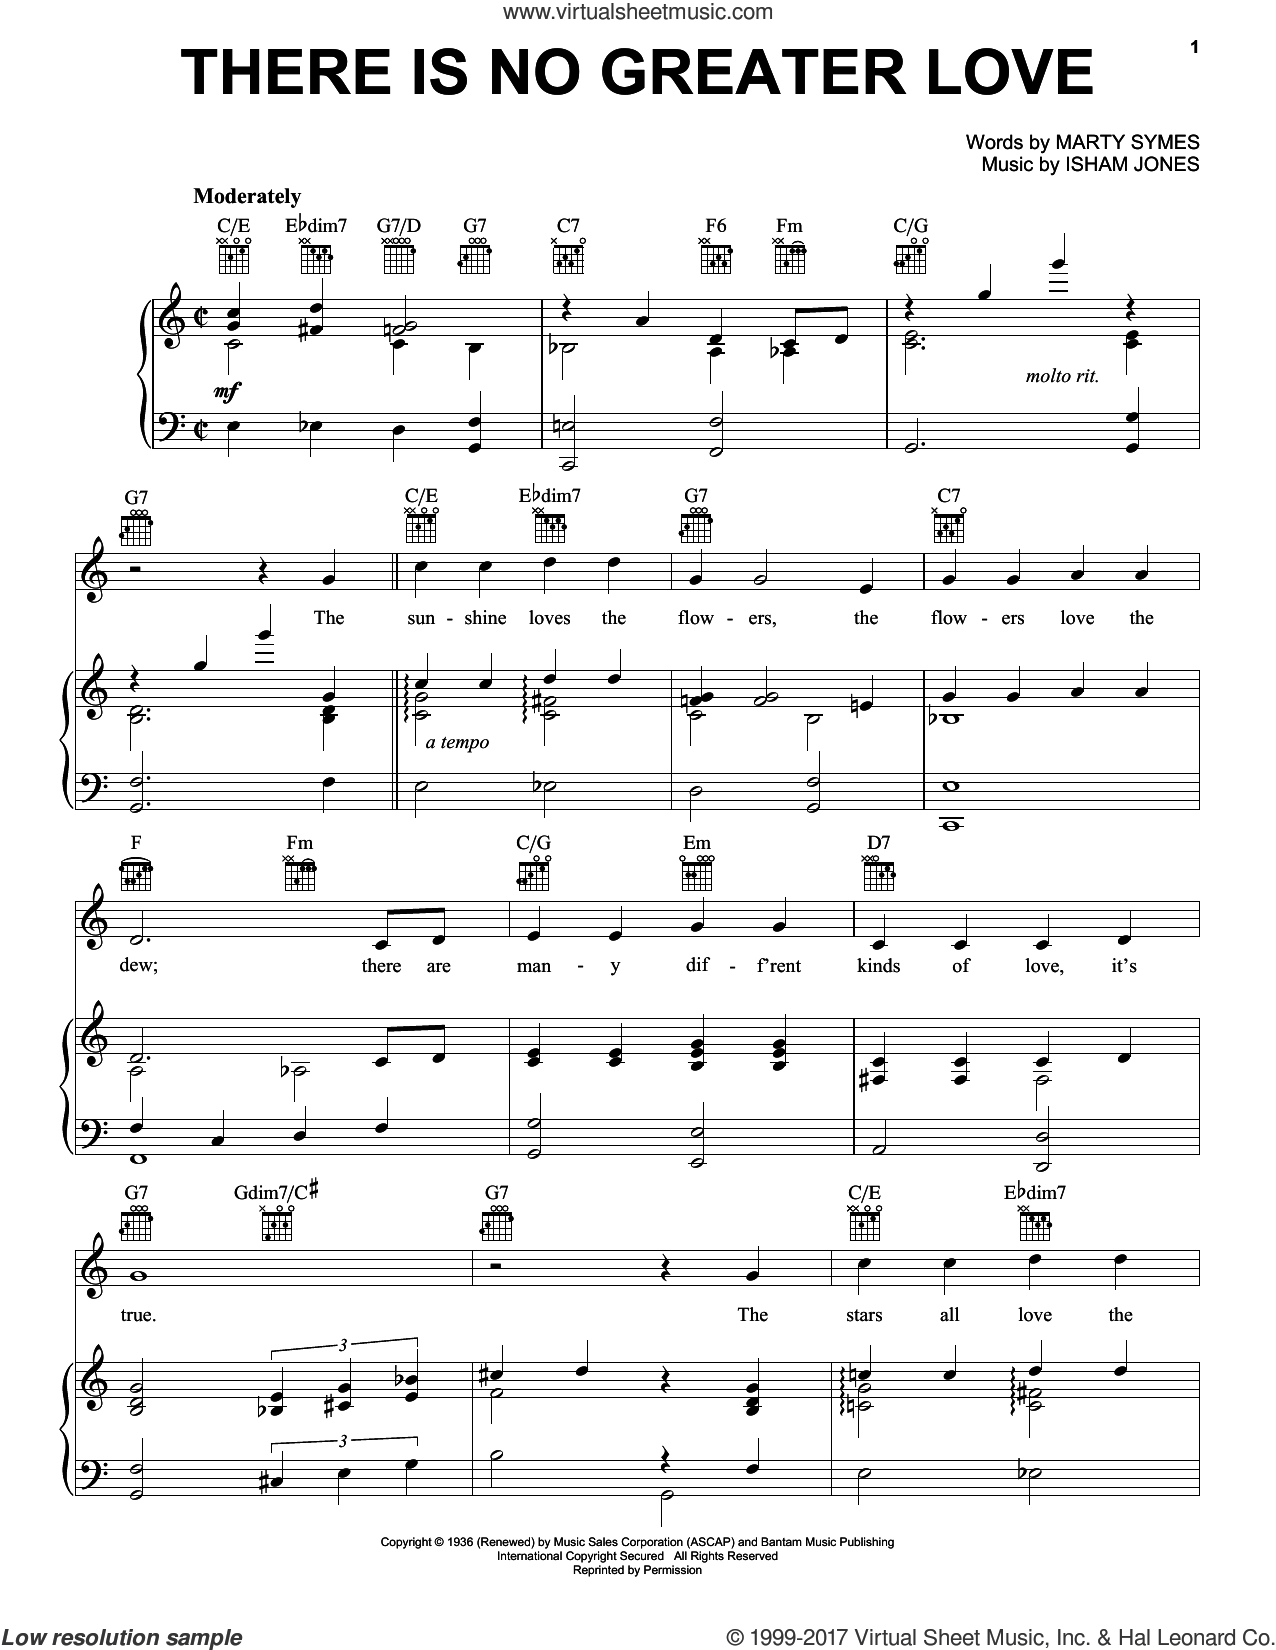 There Is No Greater Love sheet music for voice, piano or guitar by Isham Jones and Marty Symes, intermediate skill level